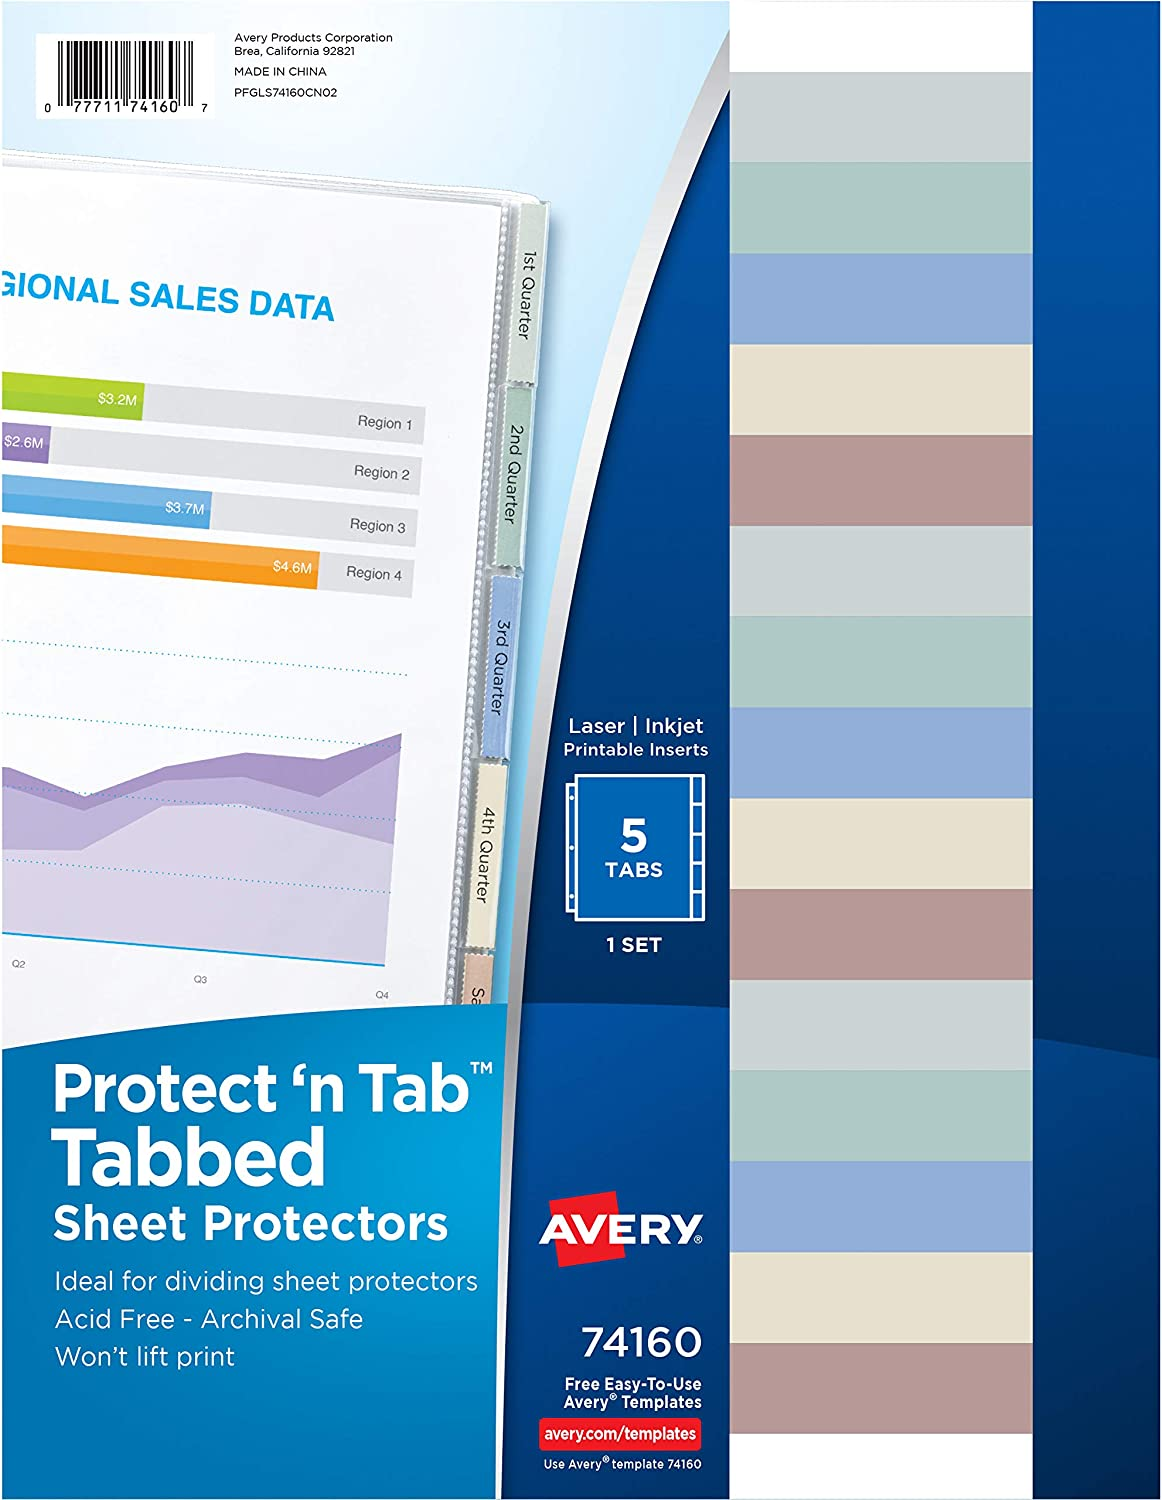 Avery Protect 'n Tab Tabbed Sheet Protectors, Acid Free, 5-Tab Pack (74160)